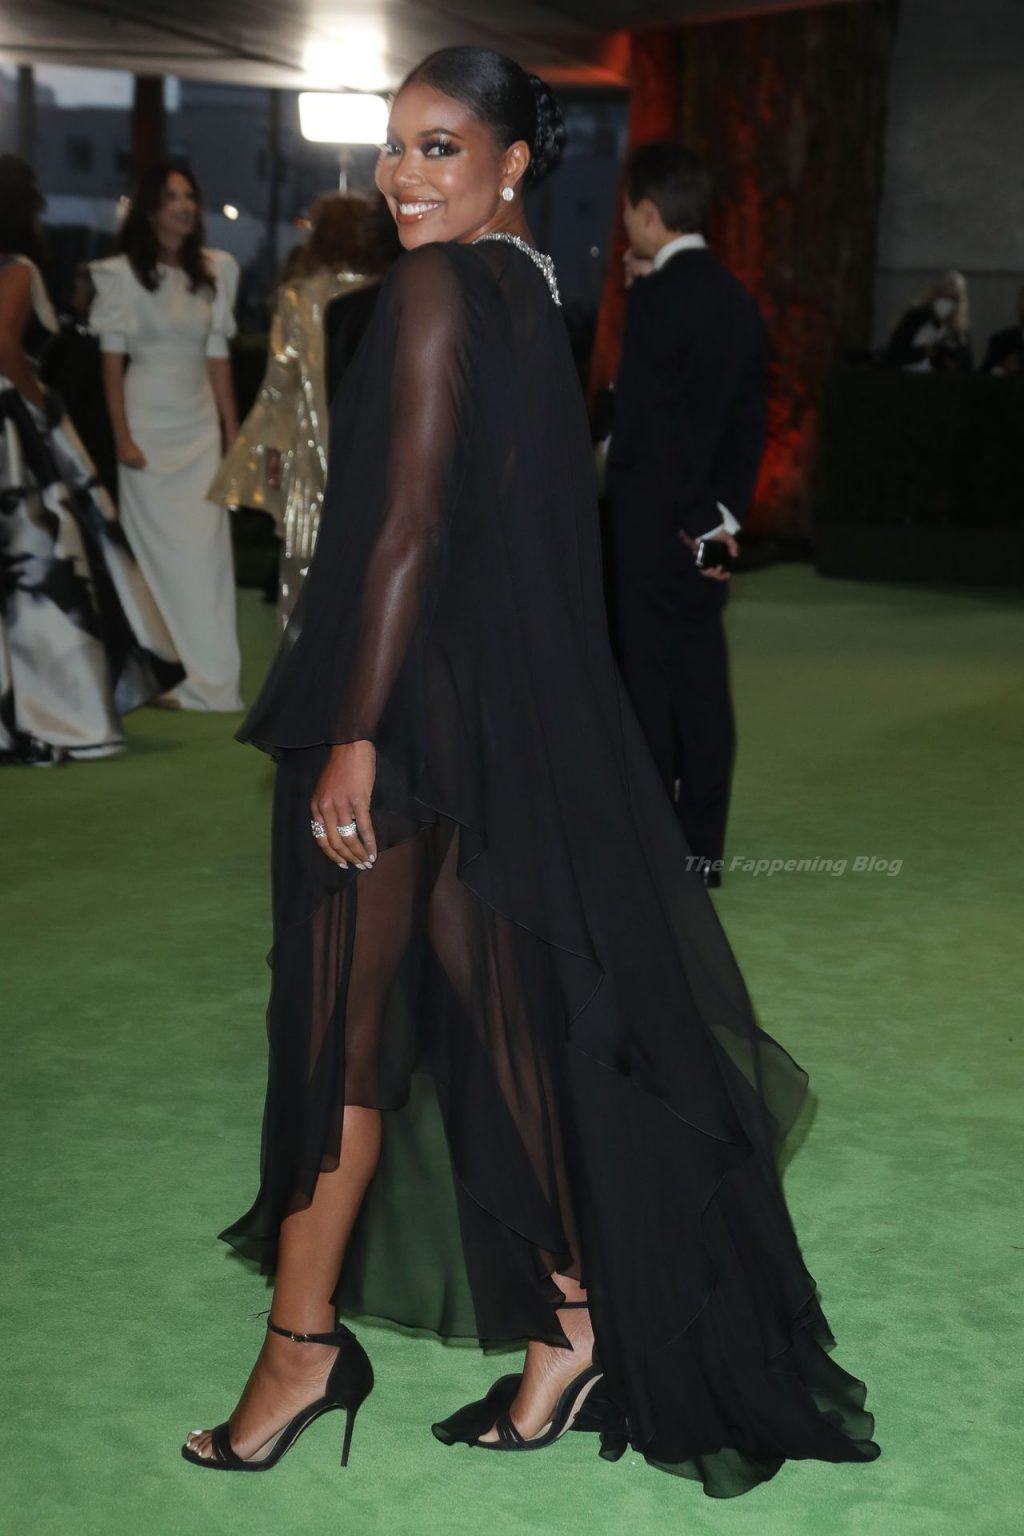 Gabrielle Union Flaunts Her Cleavage in a Black Dress at the Opening Gala of the Academy Museum of Motion Pictures (14 Photos)